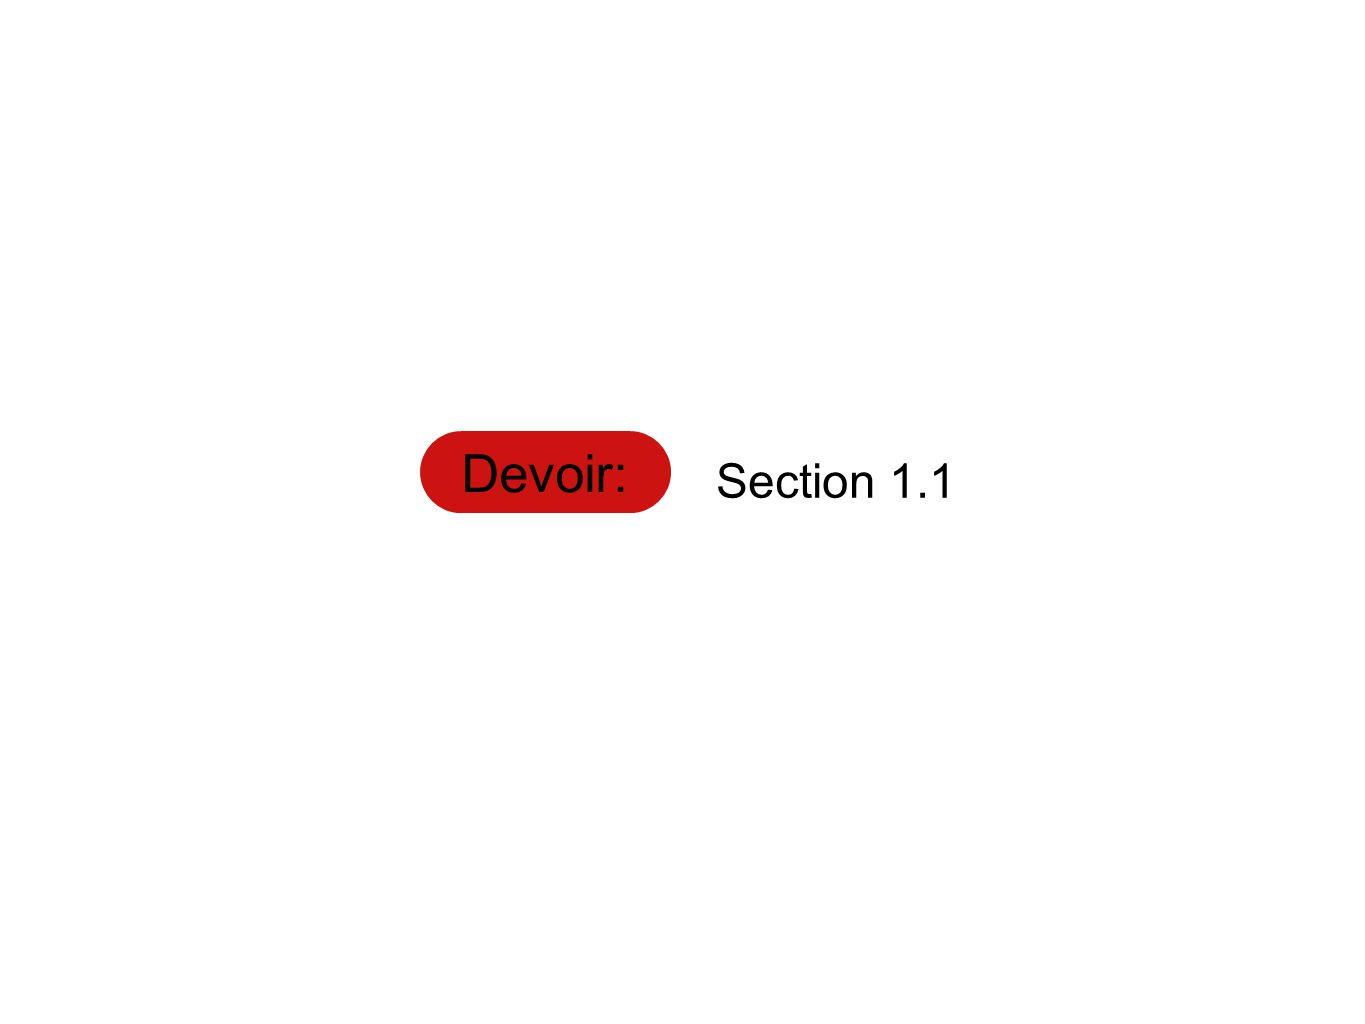 Devoir: Section 1.1